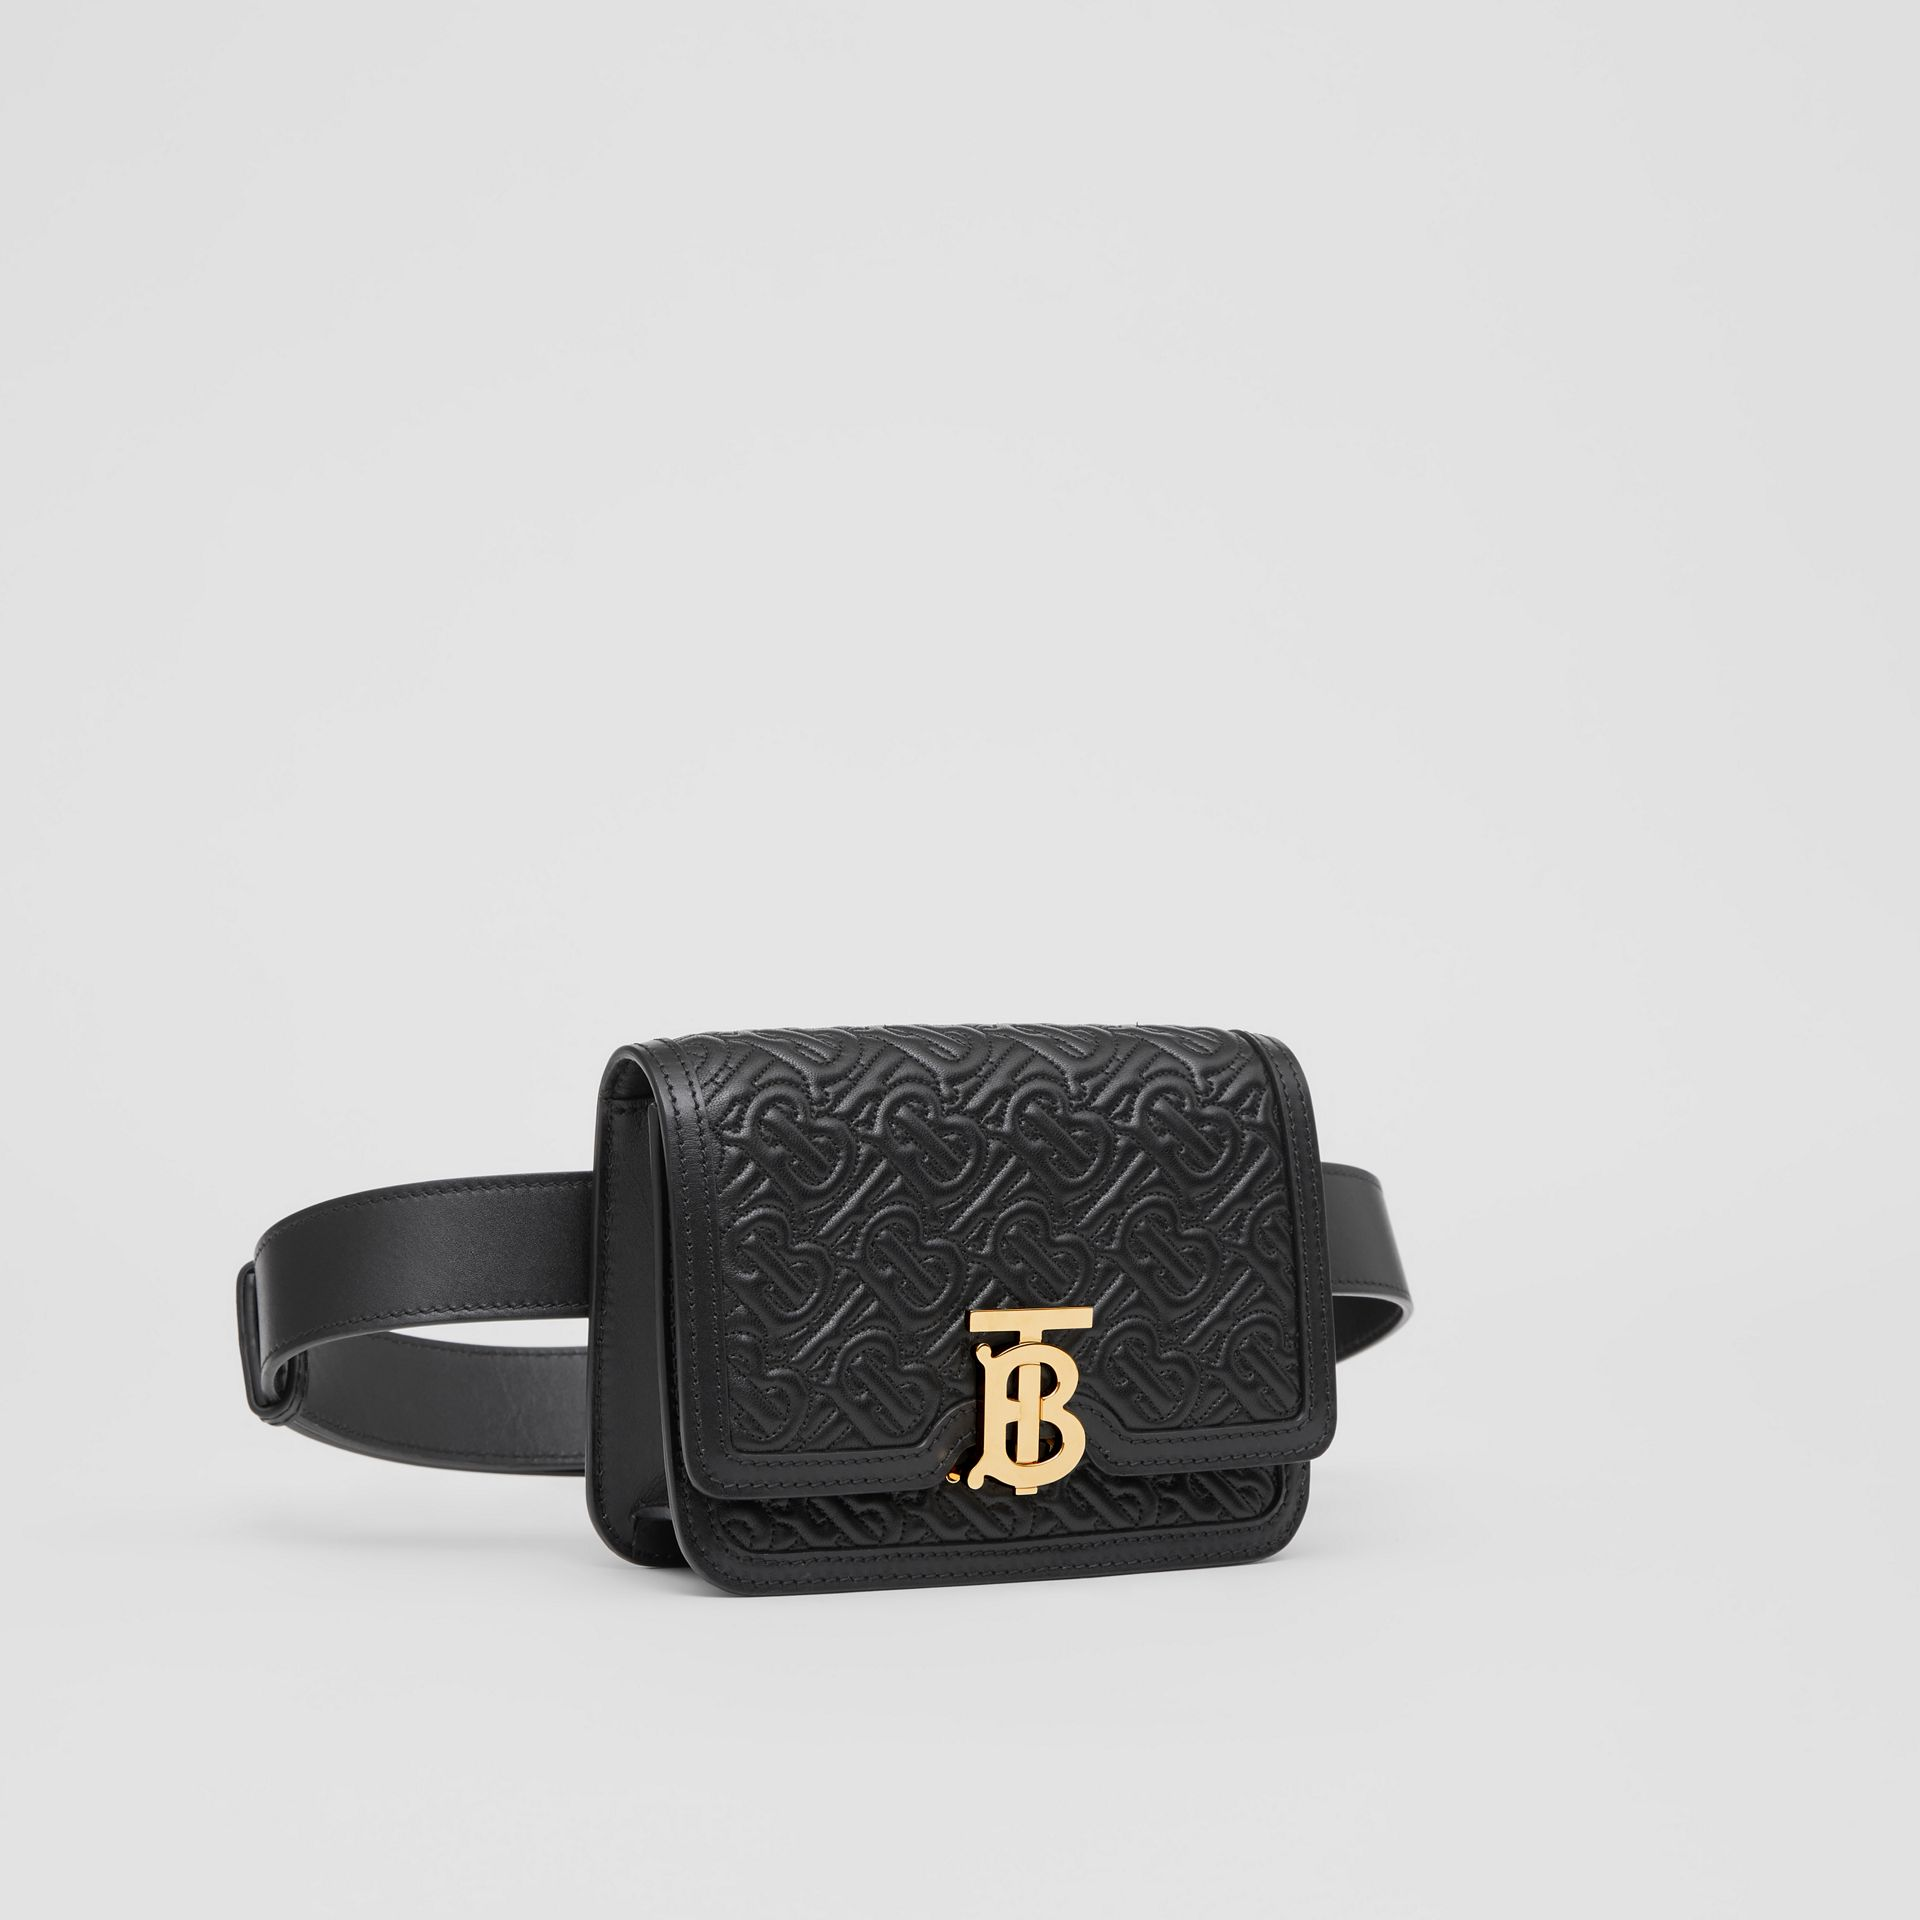 Belted Quilted Monogram Lambskin TB Bag in Black - Women | Burberry United States - gallery image 6